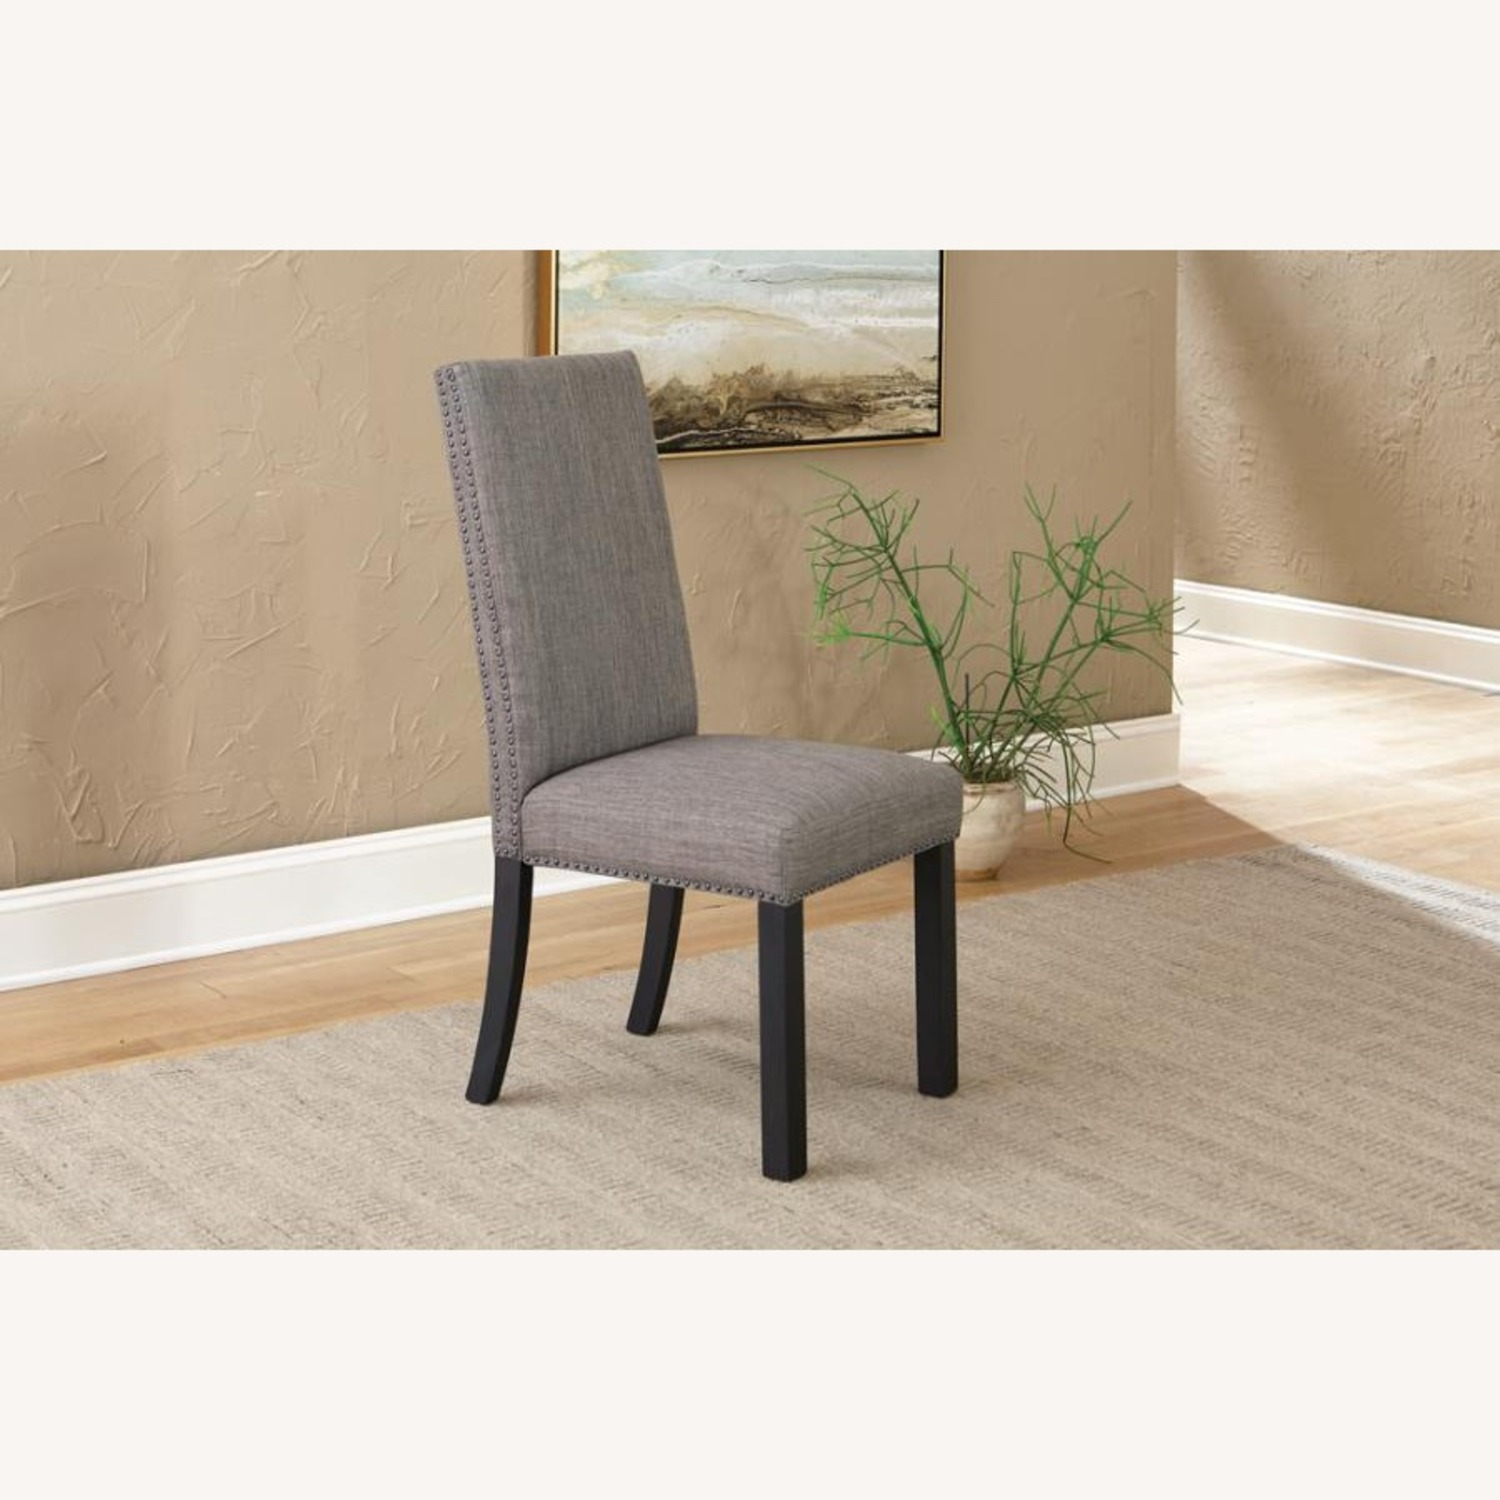 Dining Chair In Grey Linen Upholstery - image-1